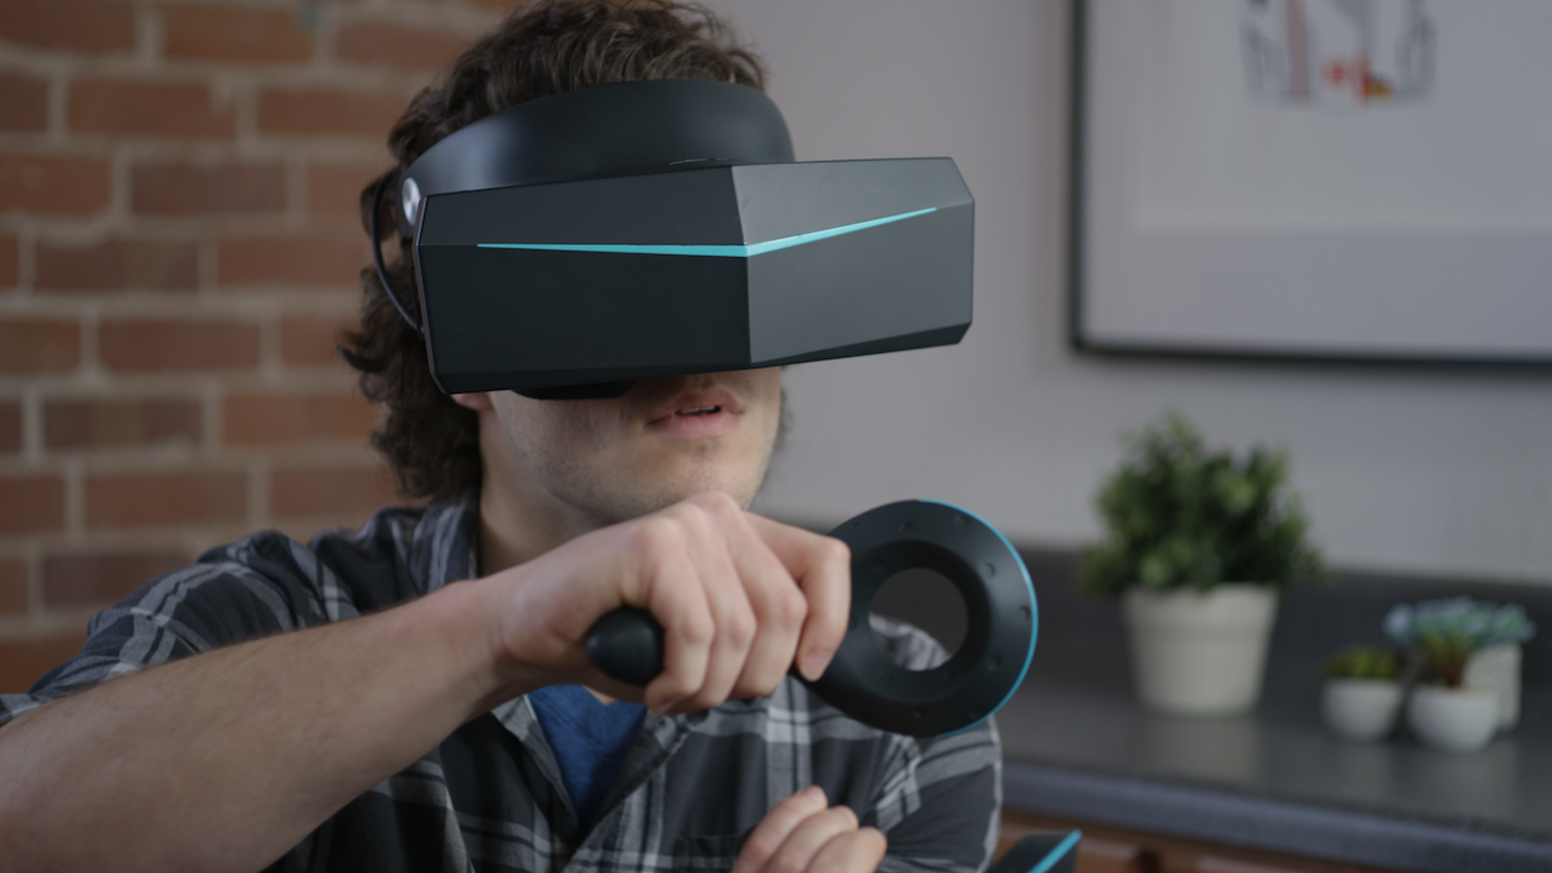 7614796ae6a Pimax 8K allows users to experience VR with Peripheral vision while solving  the problem of screen